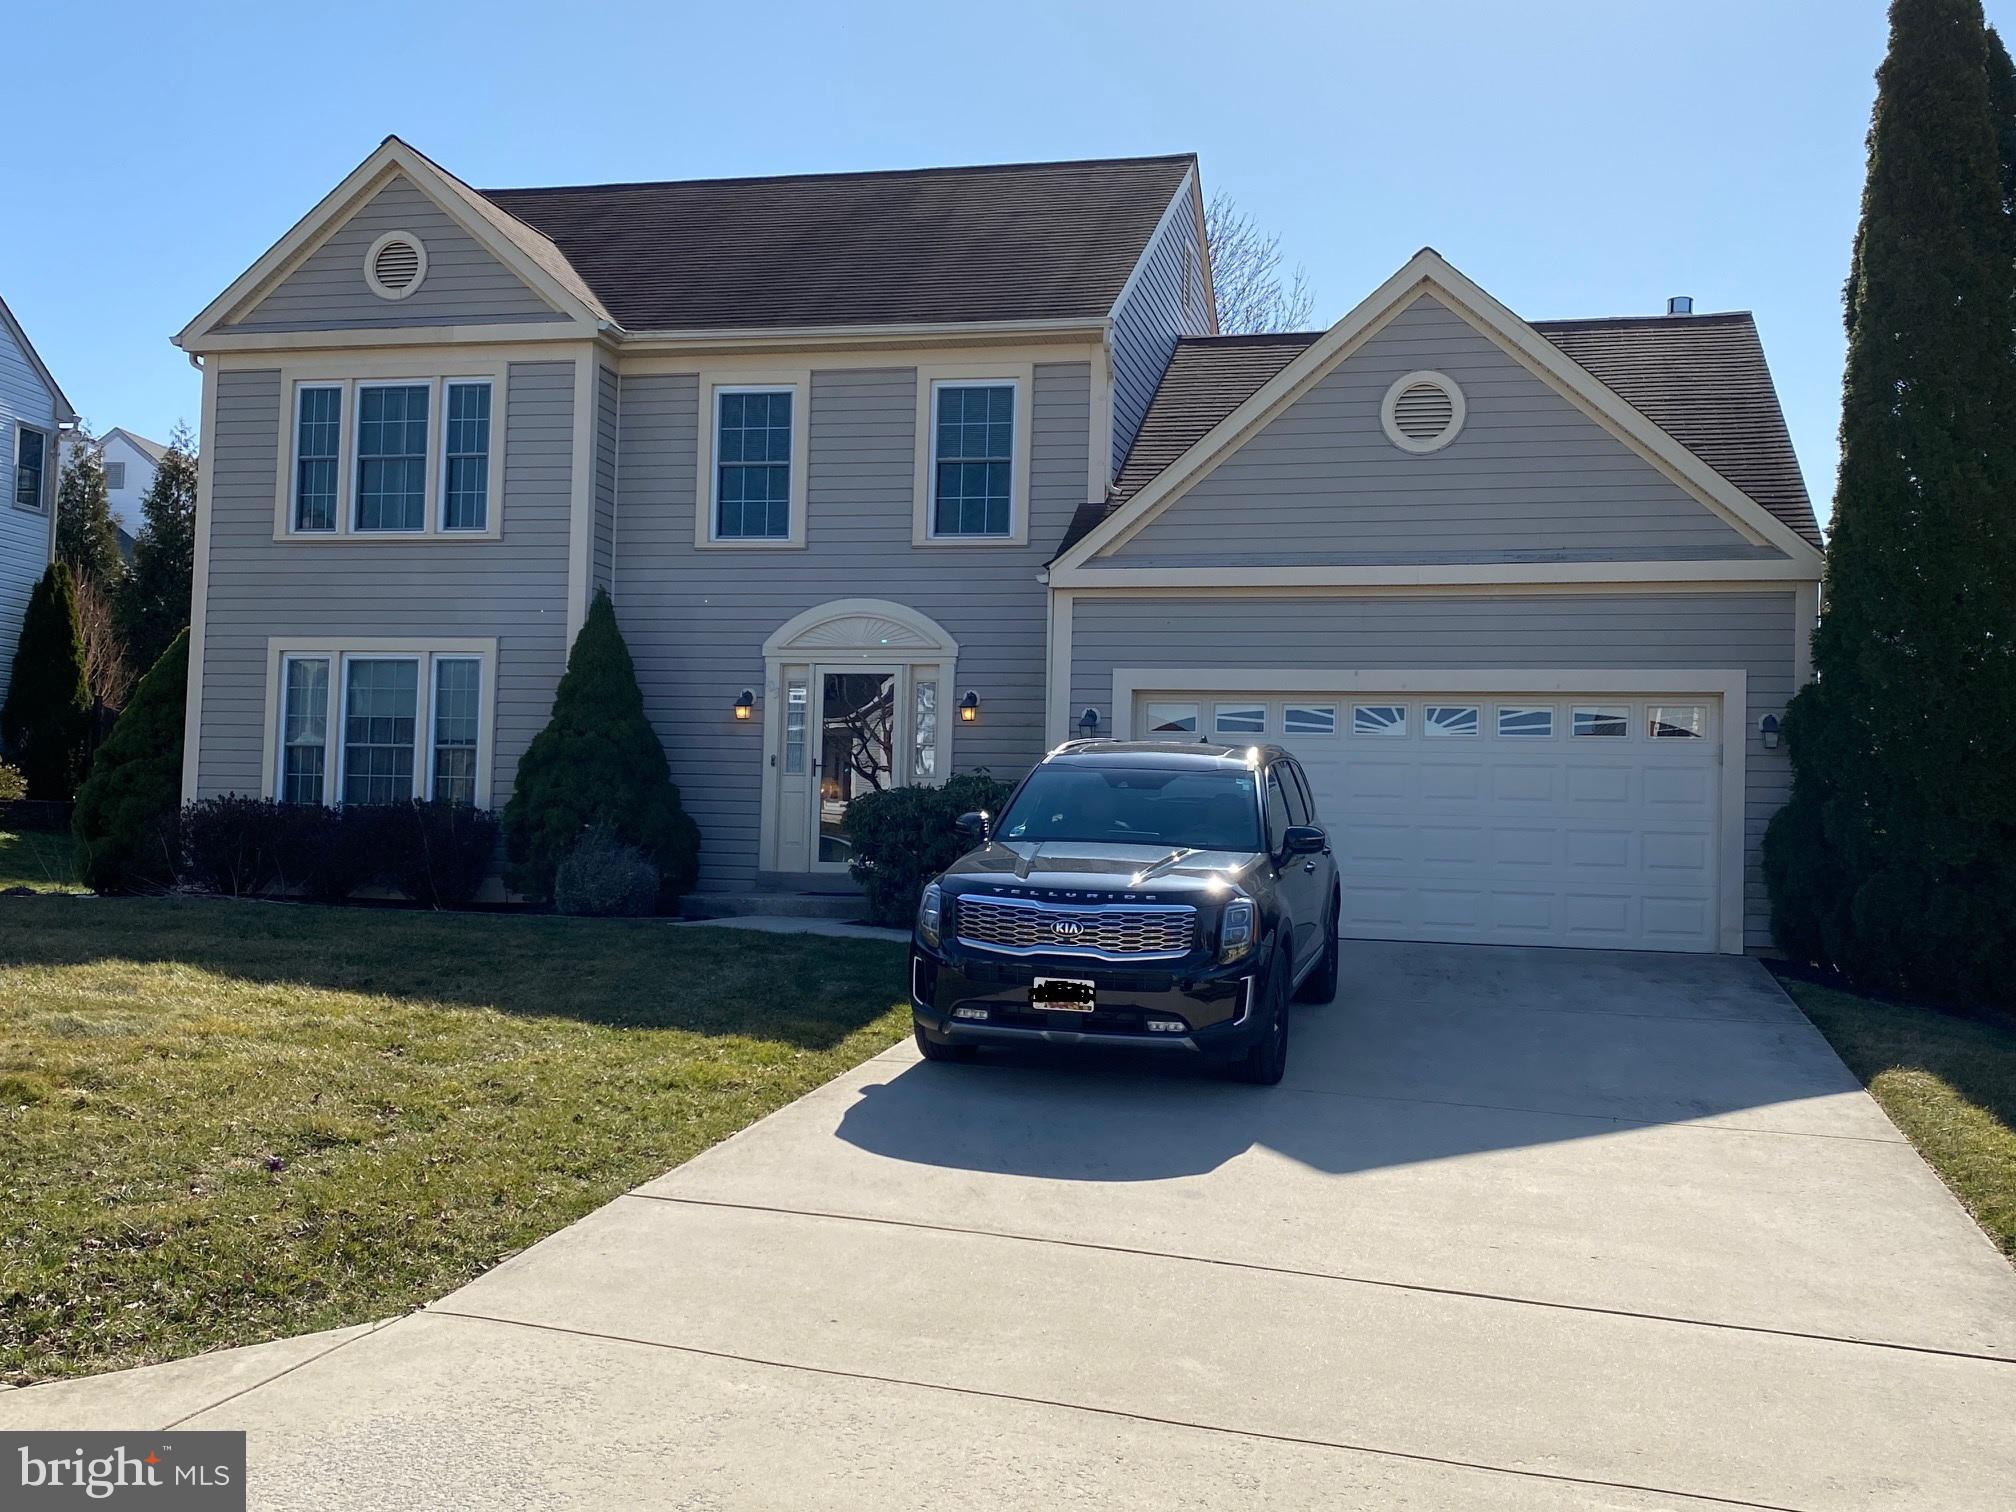 Large 3Bedroom/2.5 Bathroom Colonial Style home located in the sought after Eden Farm subdivision!!